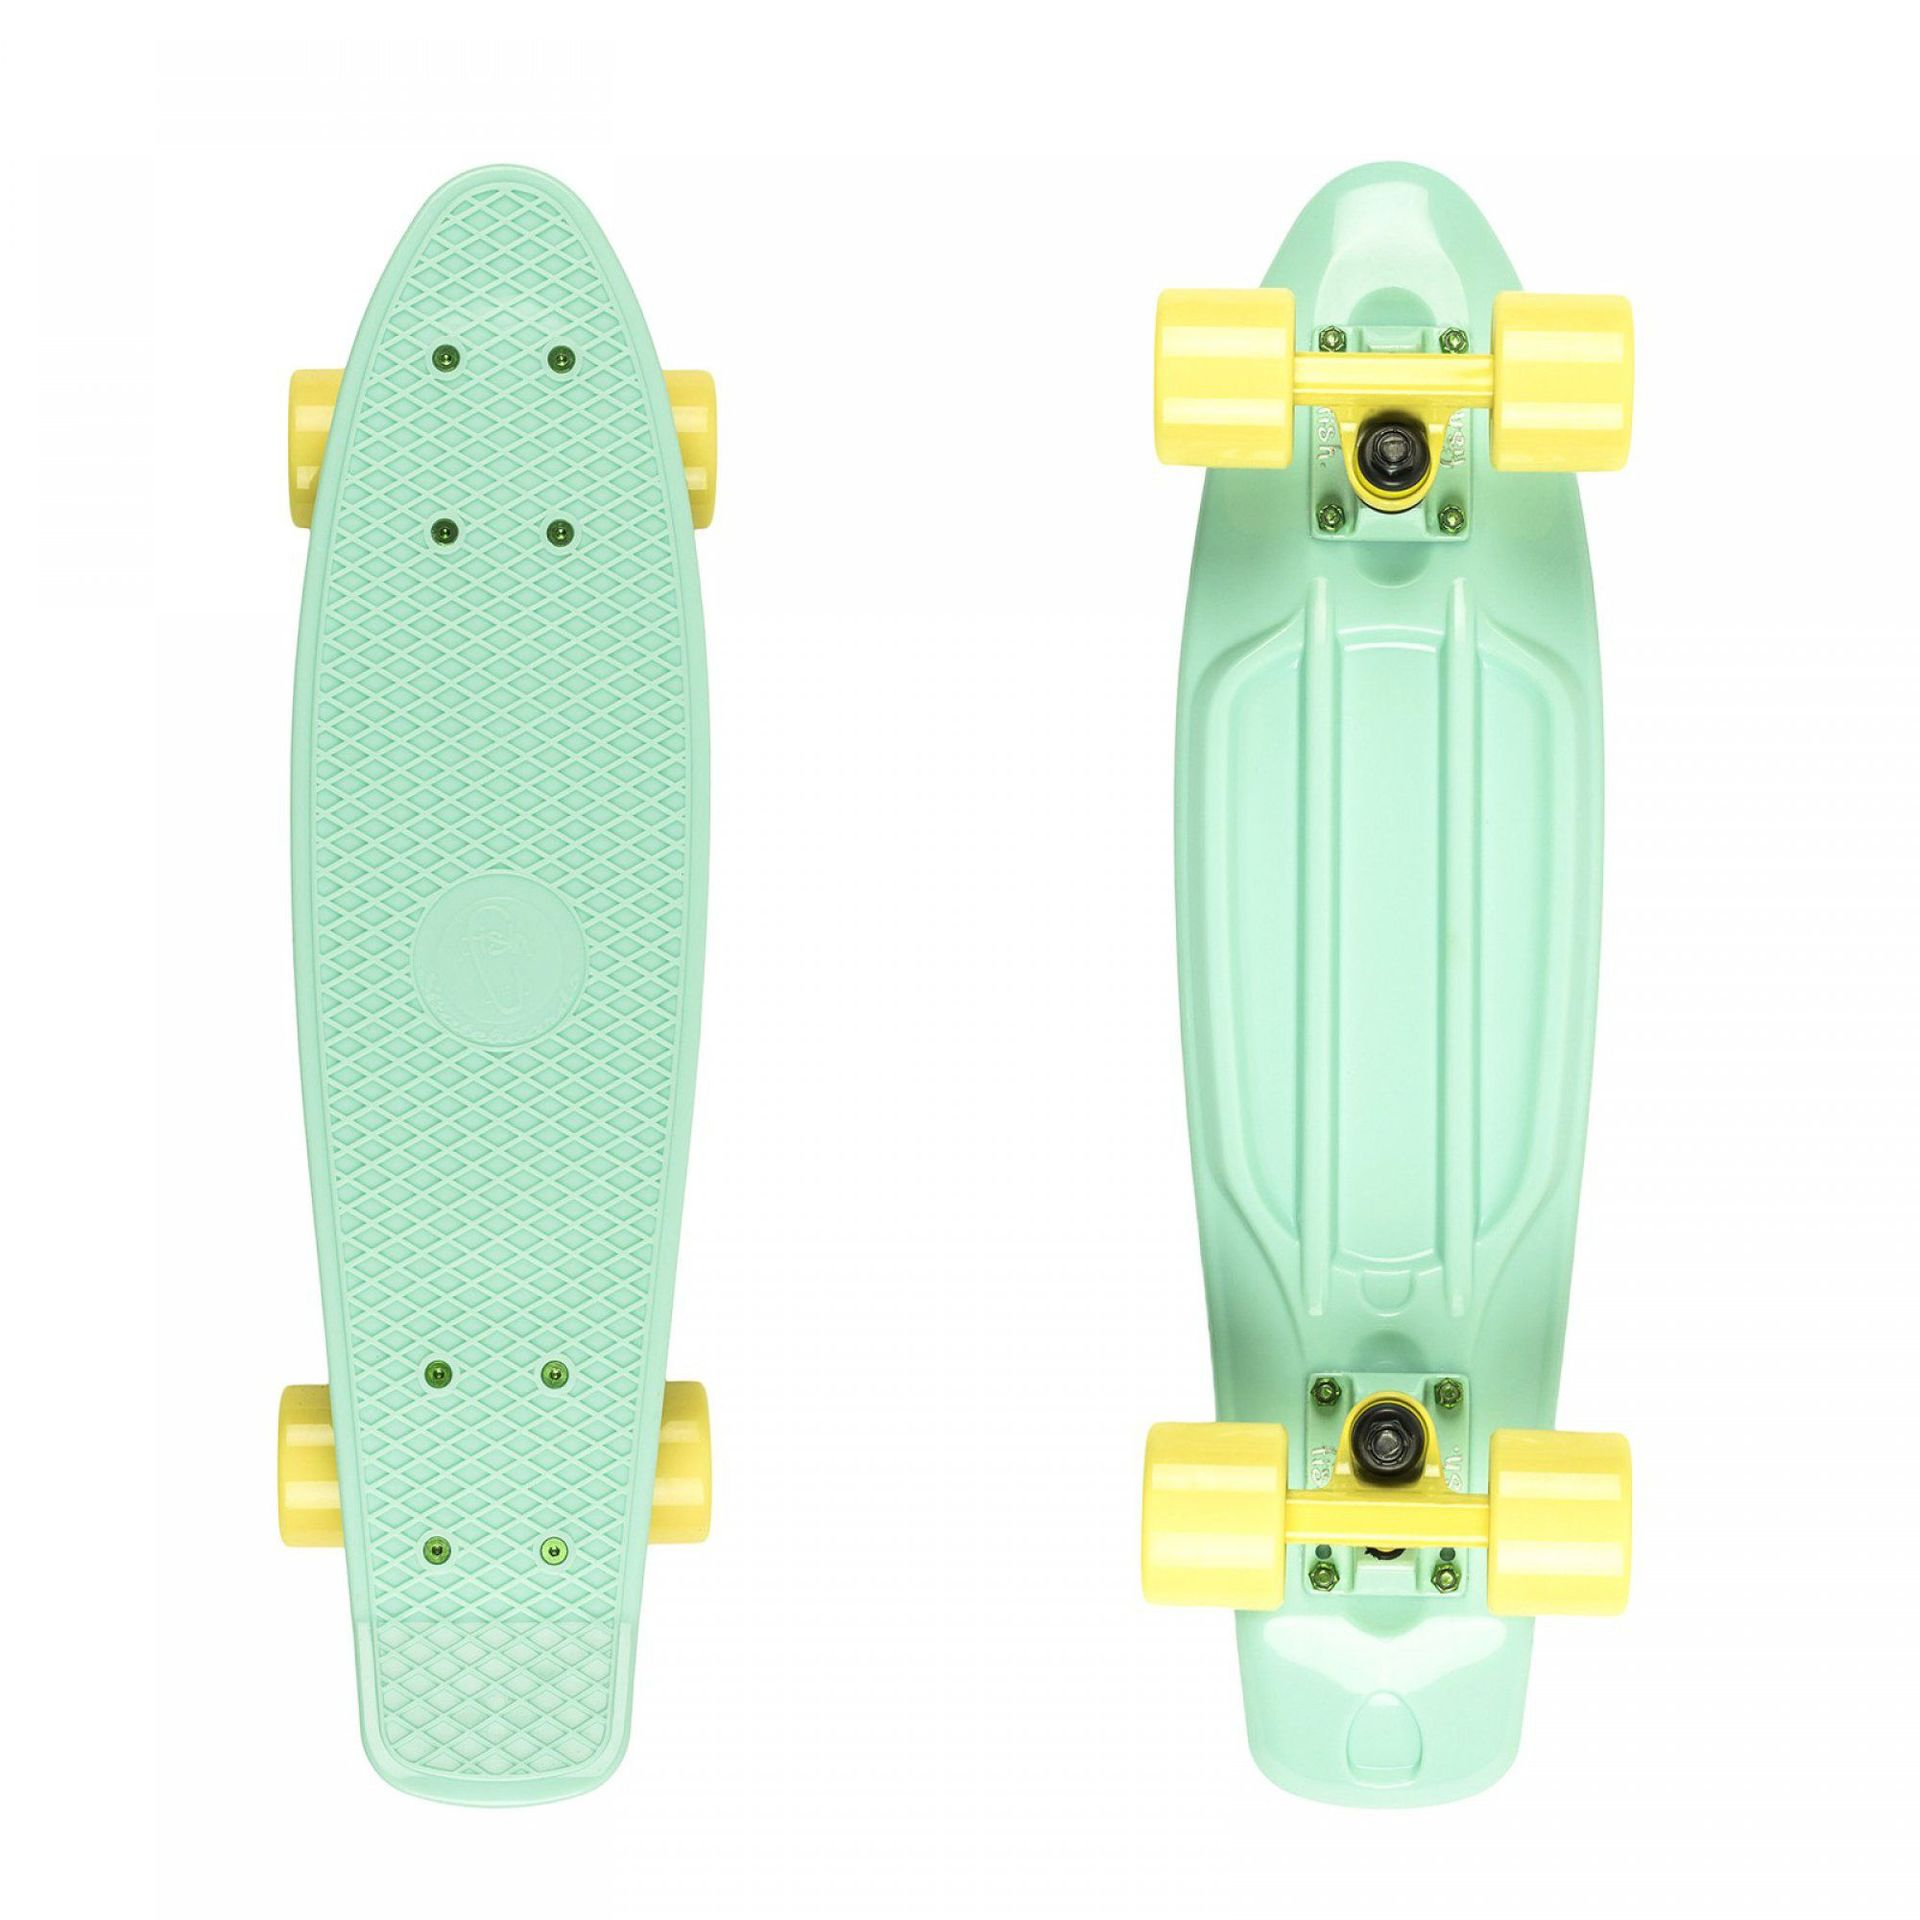 FISHBOARD FISH SKATEBOARDS CLASSIC SUMMER GREEN|2C|SUMMER YELLOW 1